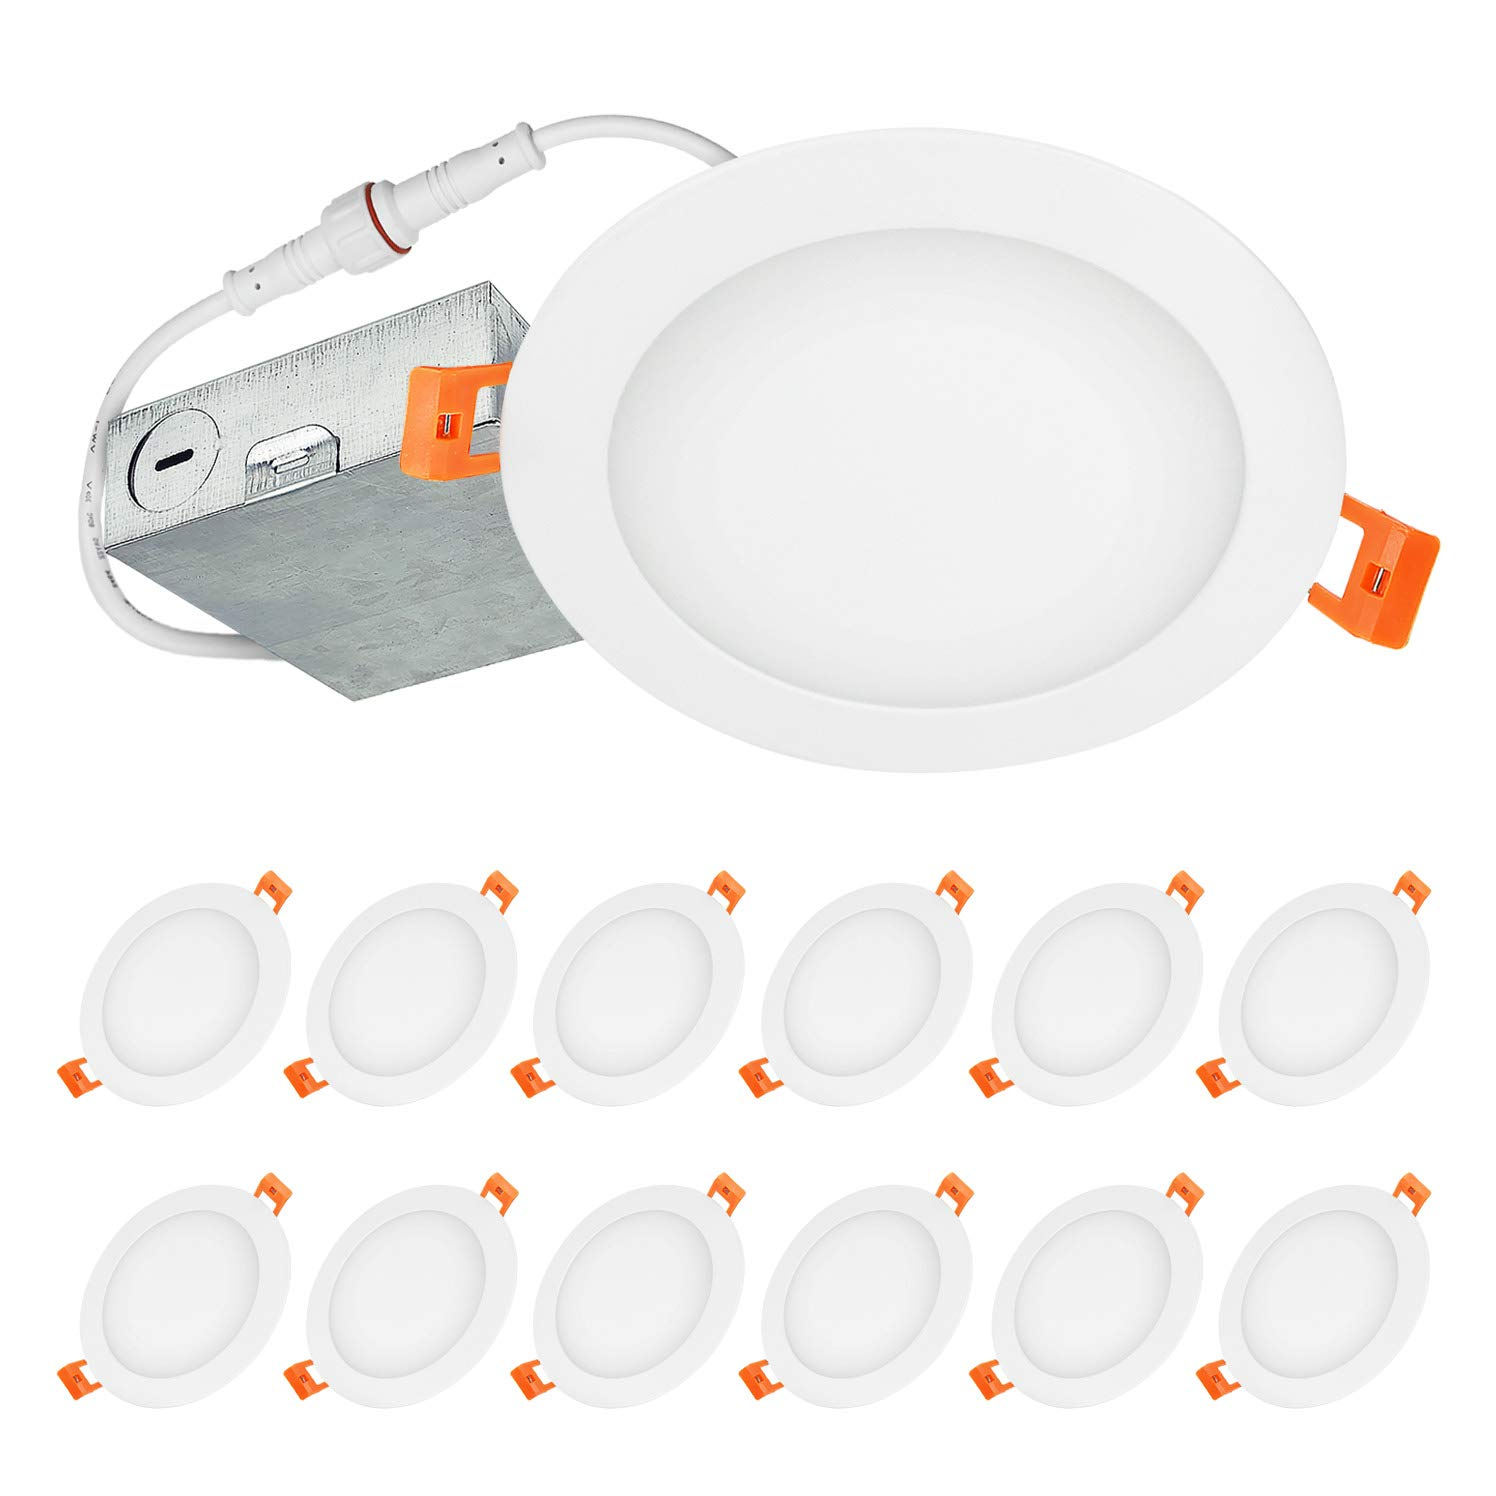 LUXTER (12 Pack) 6 inch Ultra-Thin Round LED Recessed Panel Light with Junction Box, Dimmable, IC Rated, 15W (80 Watt Repl.) 3000K Warm Light 1125 Lm. No Can Needed ETL & Energy Star Listed